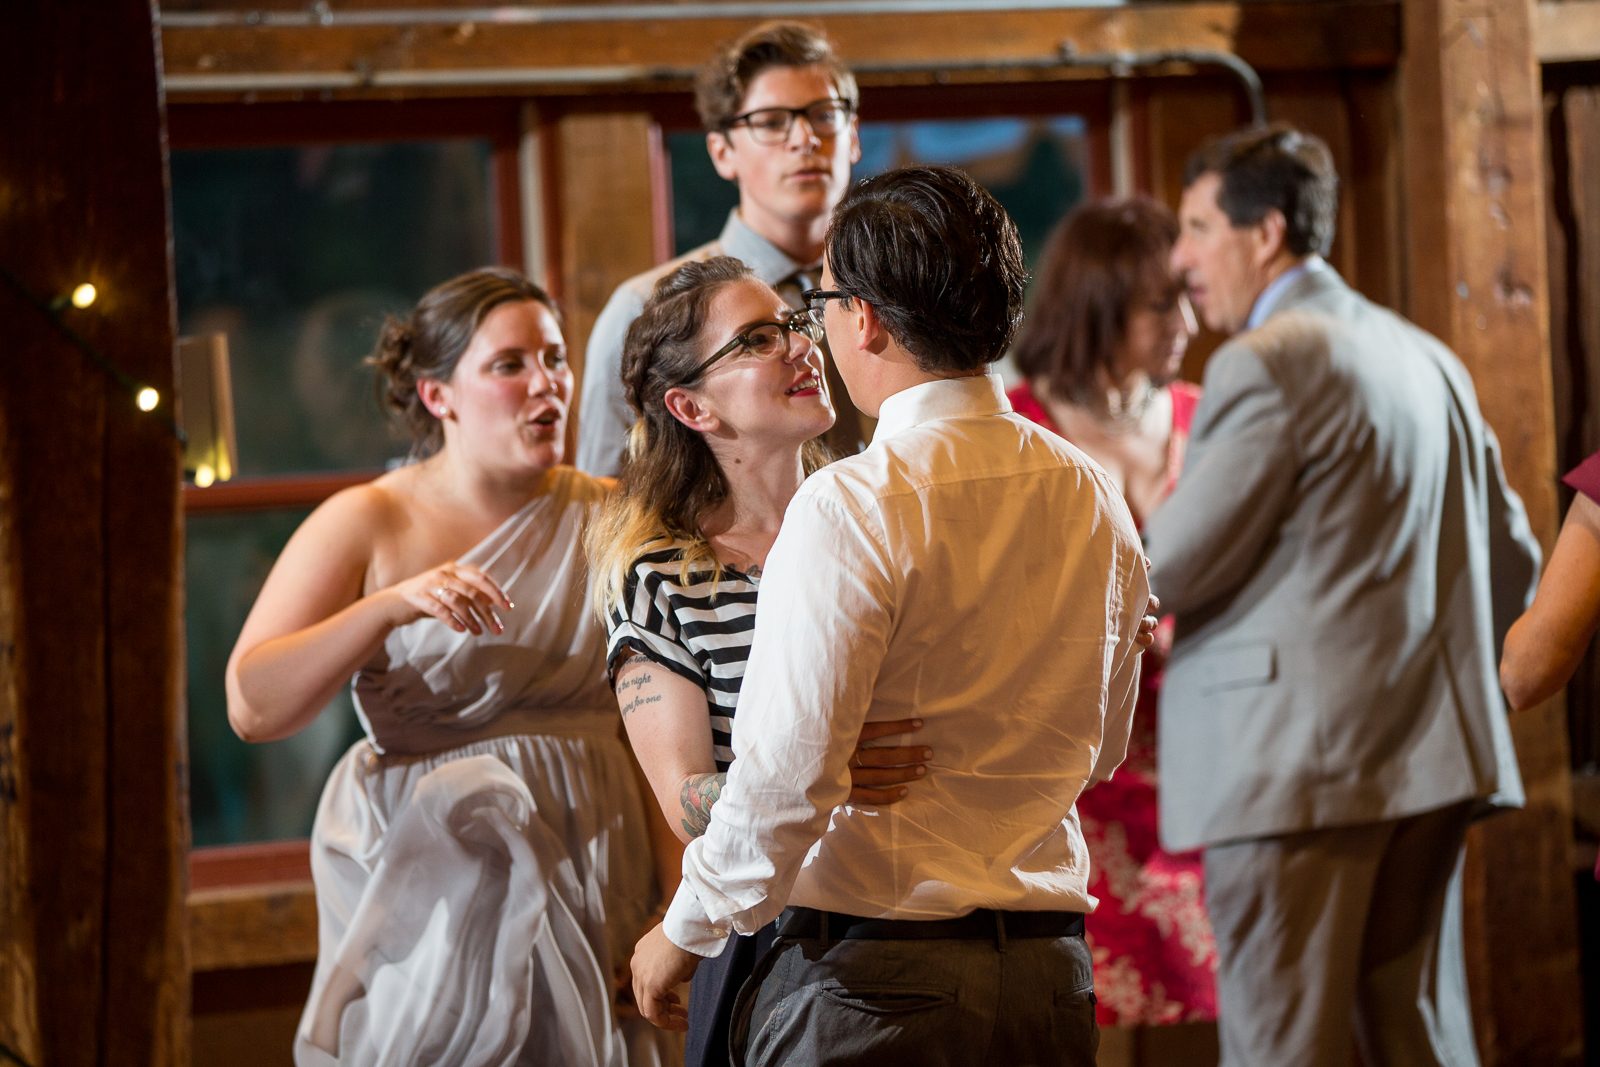 Four_Wings_Photography_Wedding_Red_Barn_at_Hampshire_College-45.jpg